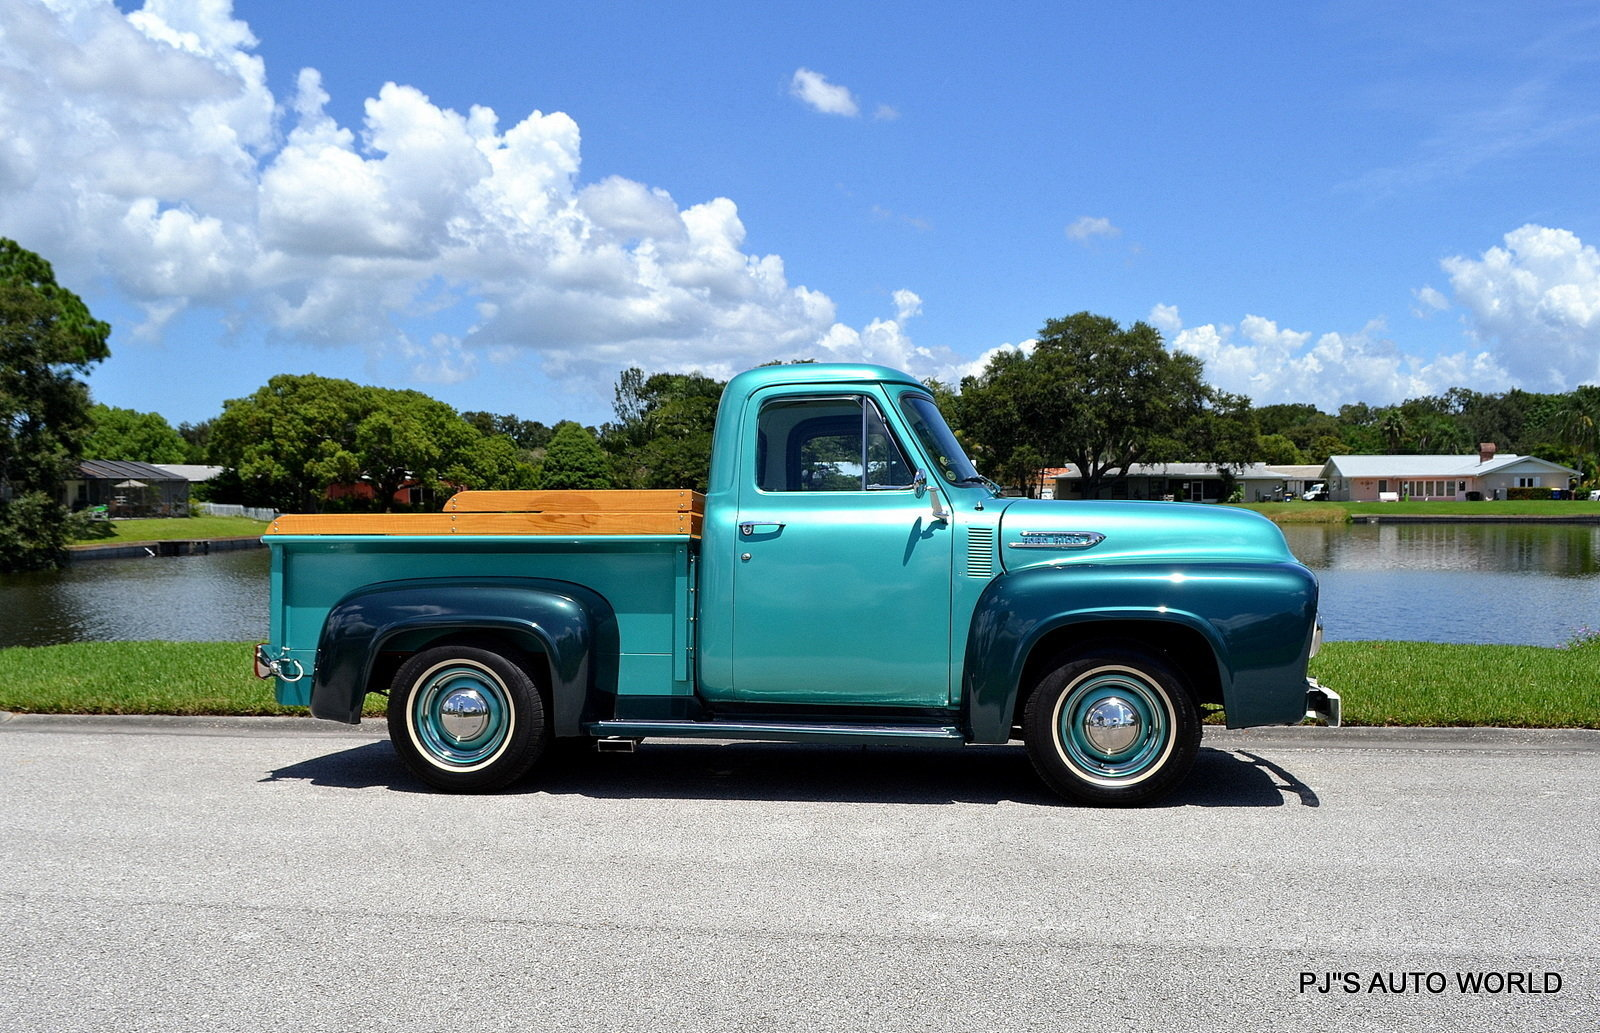 1954 Ford F100 Pjs Auto World Classic Cars For Sale Pick Up